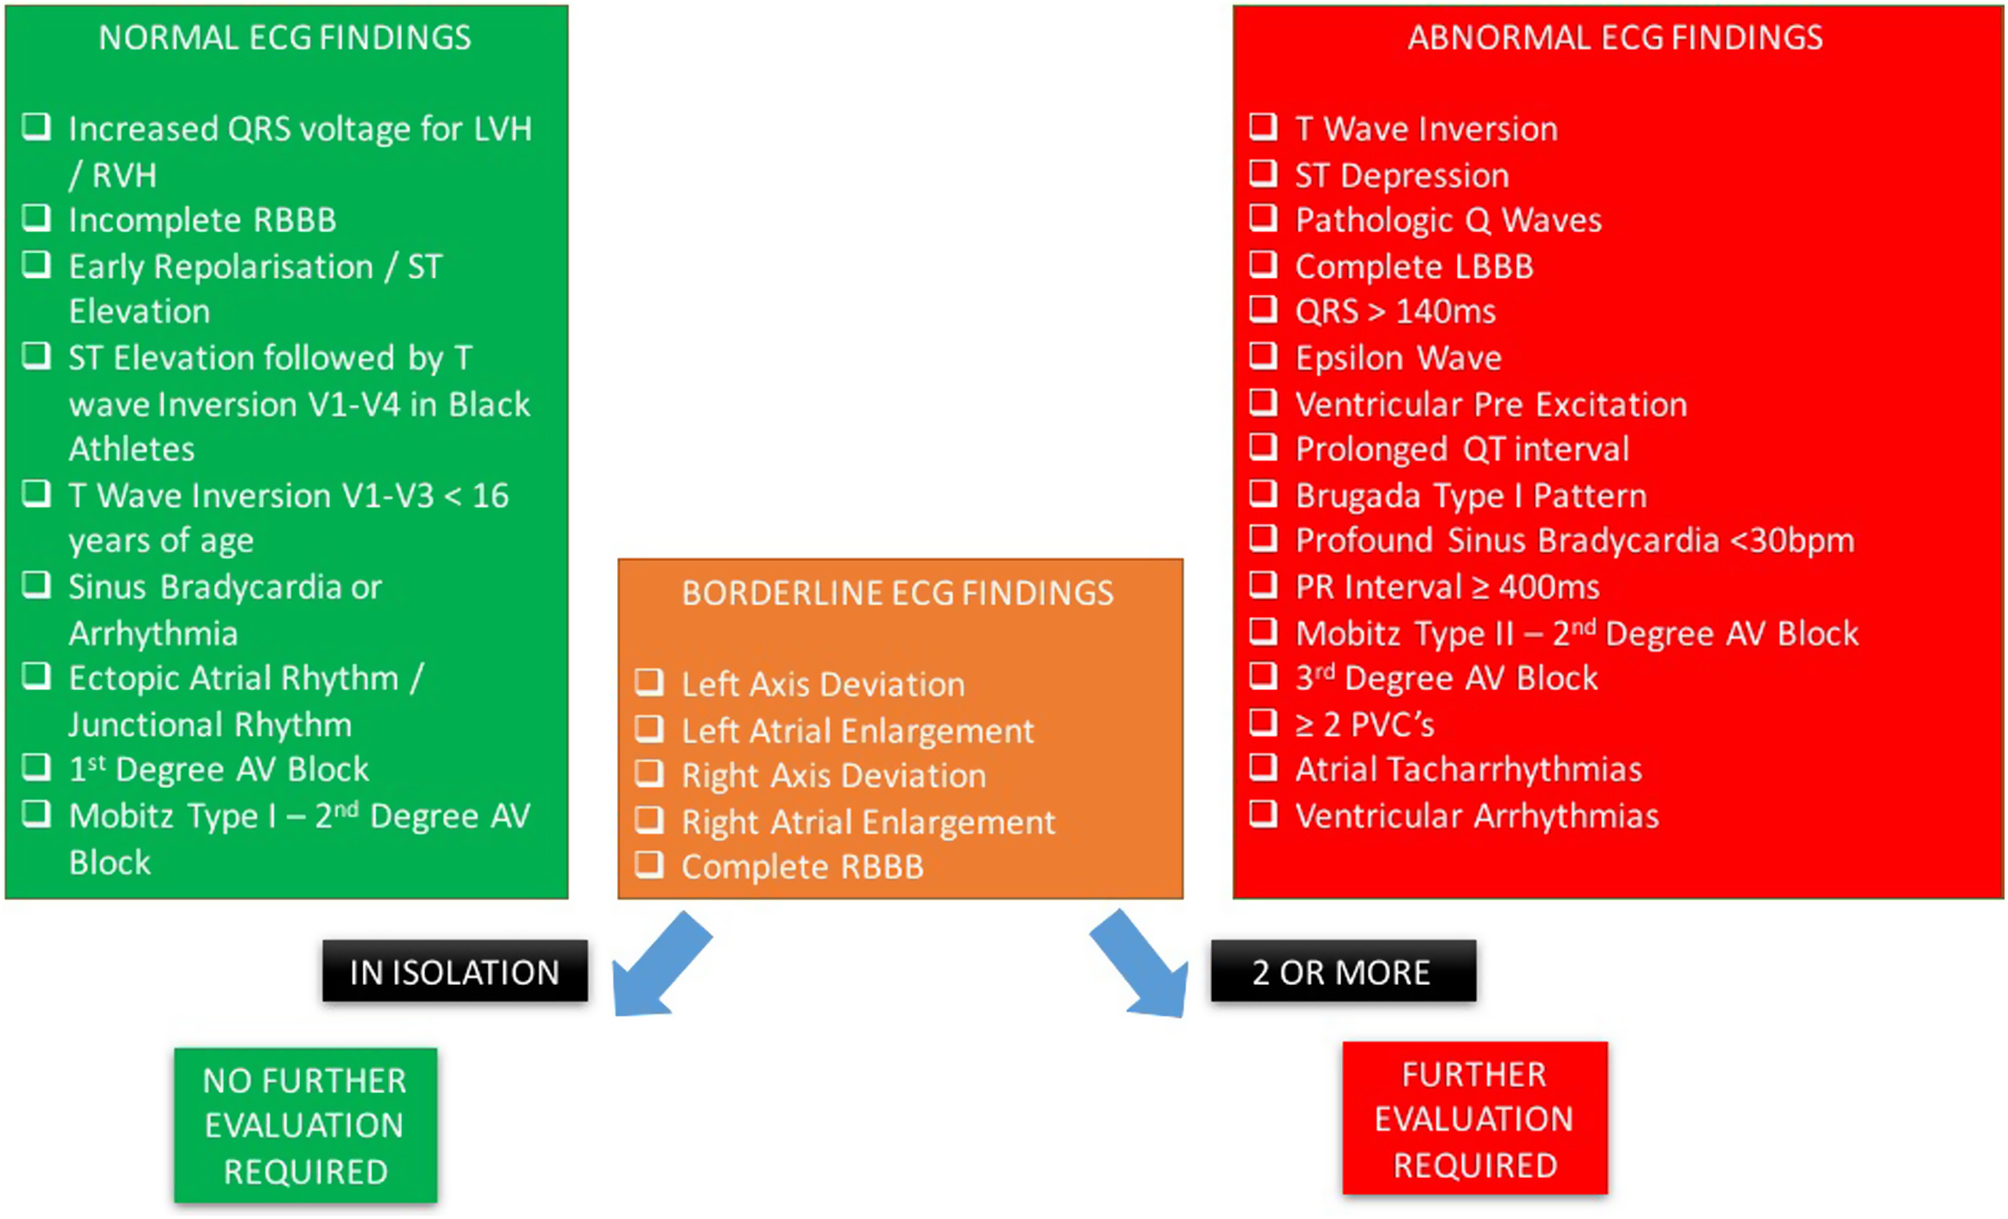 A guideline update for the practice of echocardiography in